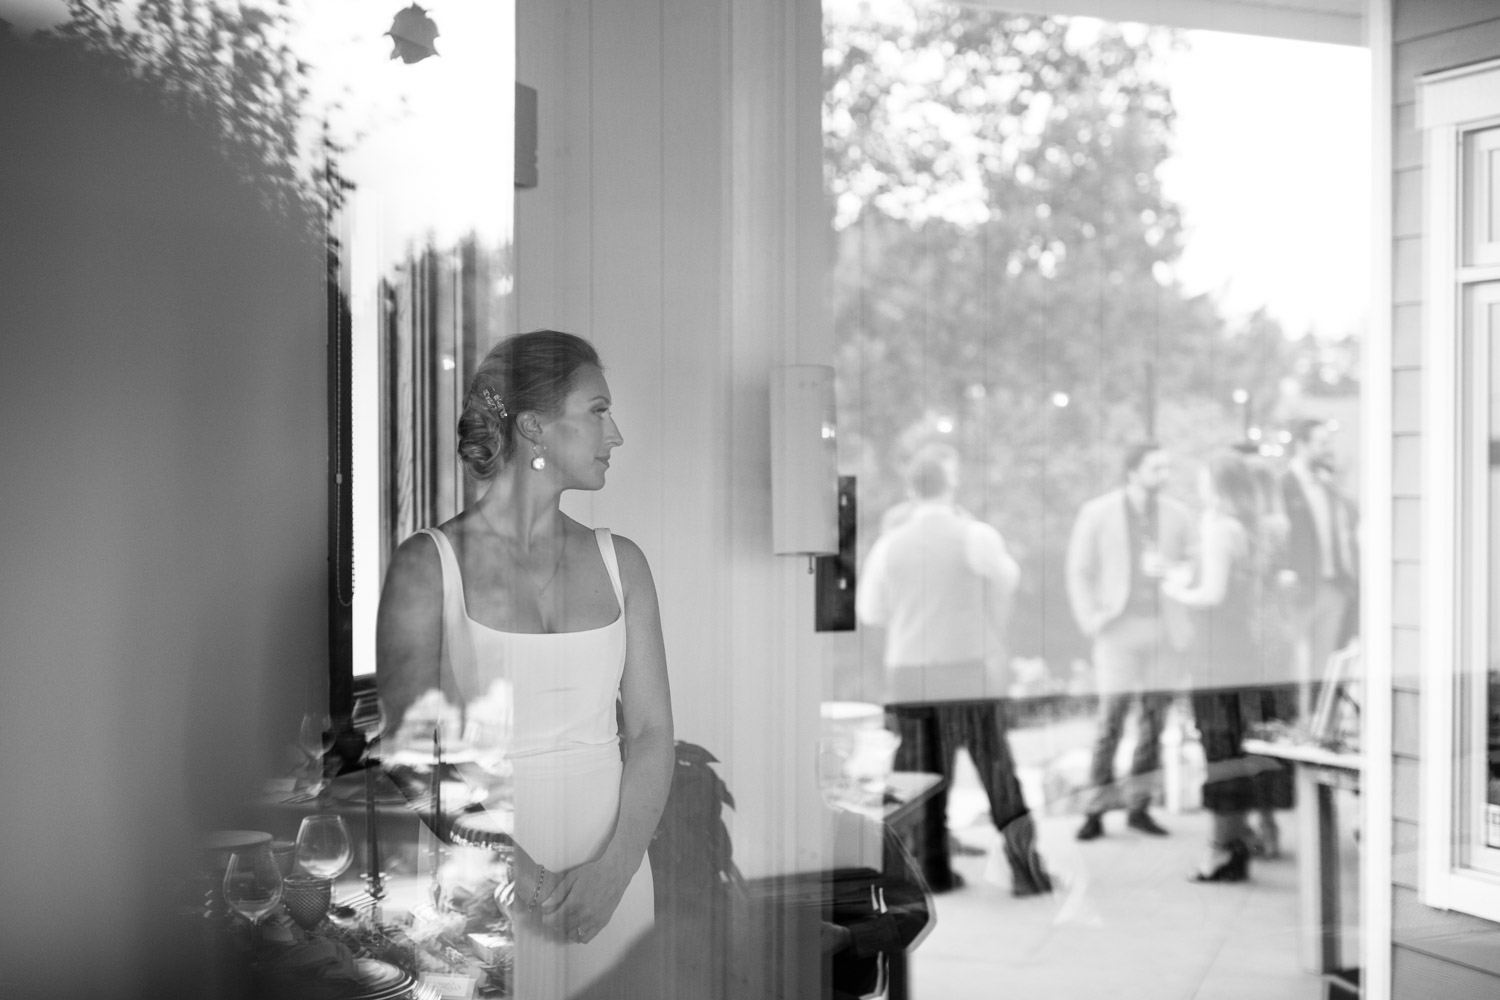 Reflection of bride in the window artistic wedding photo